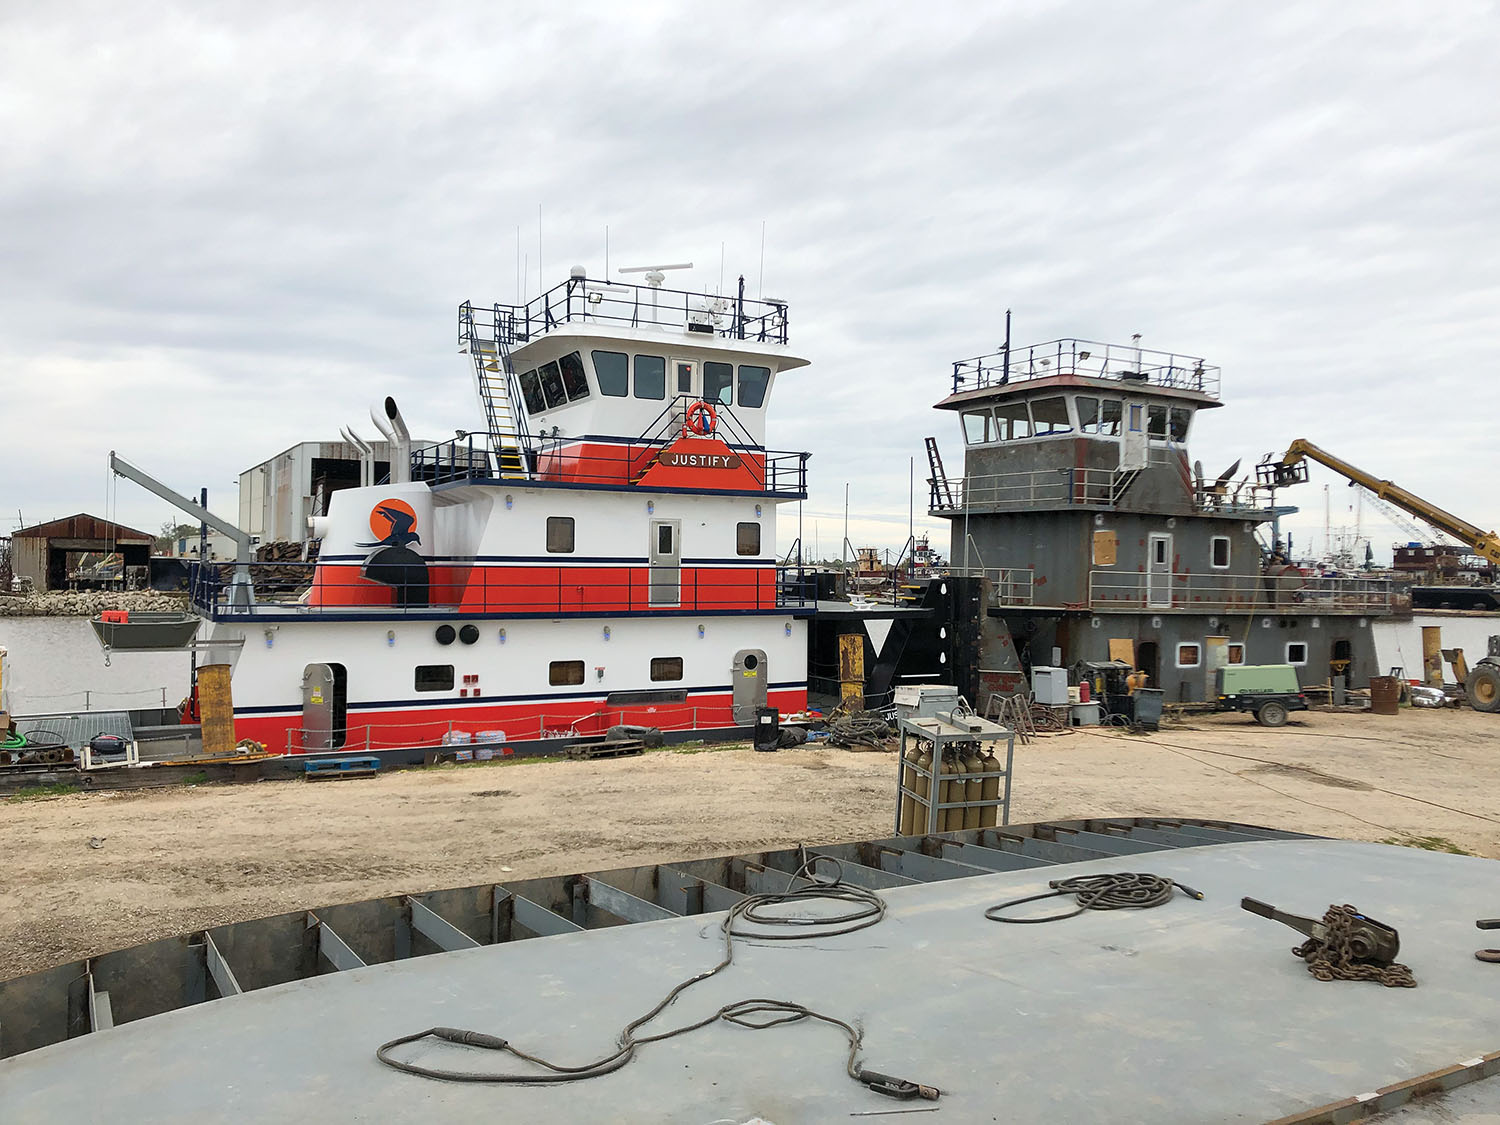 Eymard Has Four Boats Under Construction